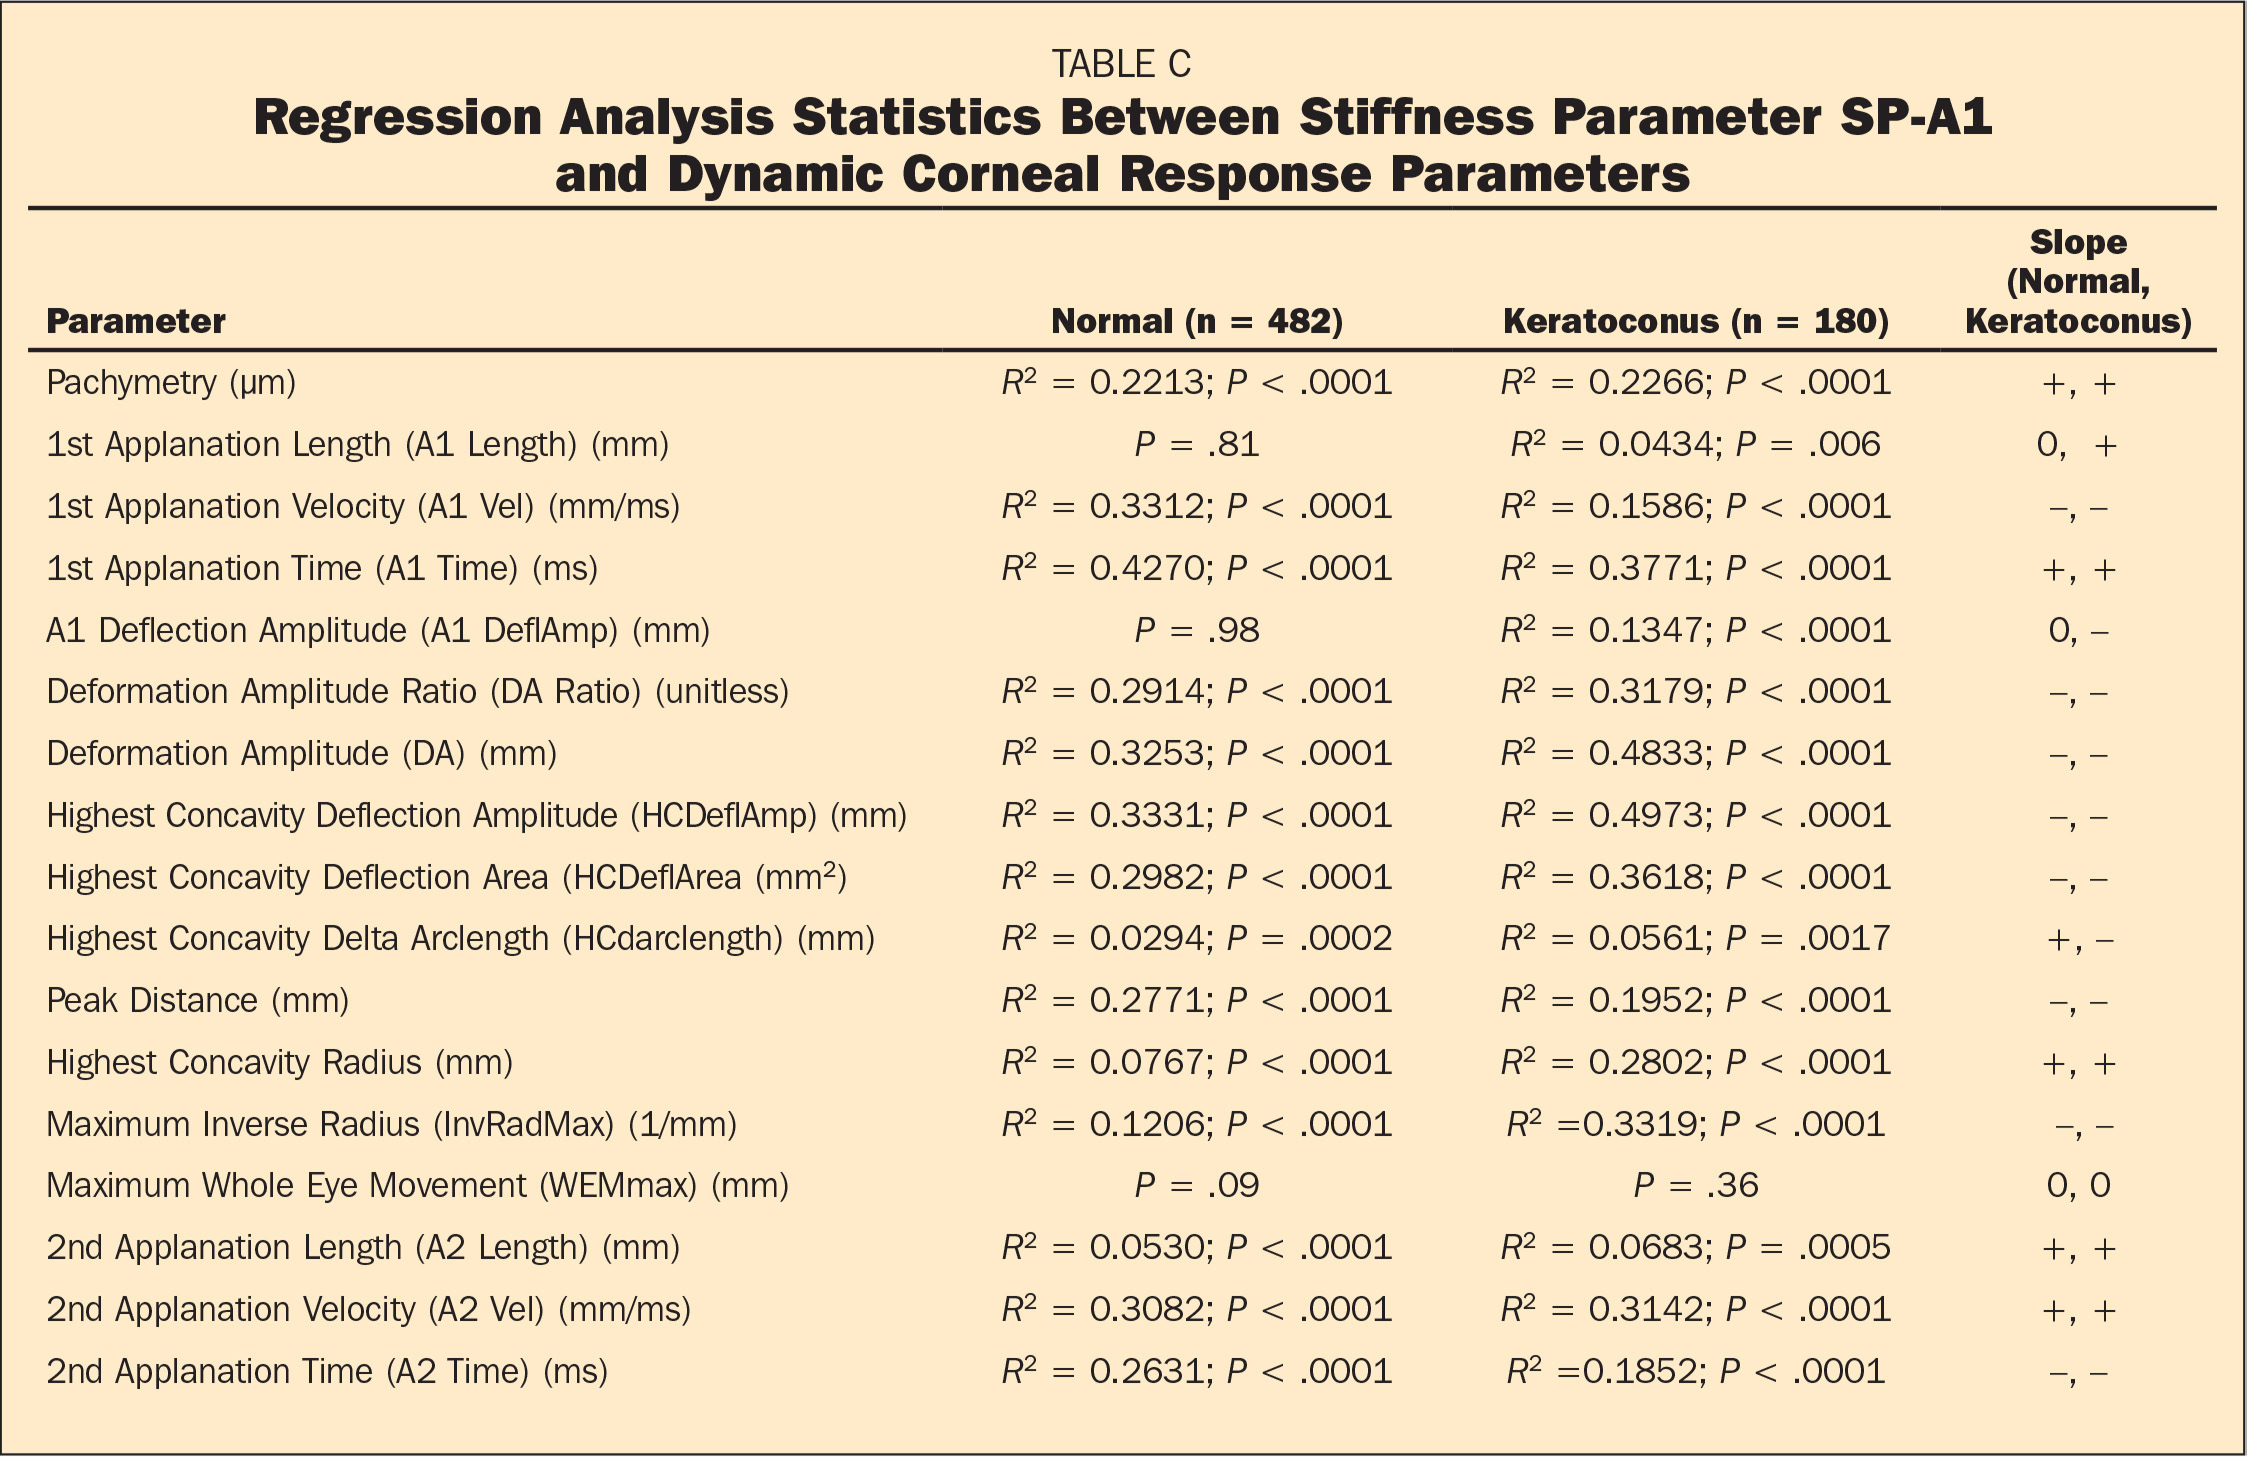 Regression Analysis Statistics Between Stiffness Parameter SP-A1 and Dynamic Corneal Response Parameters